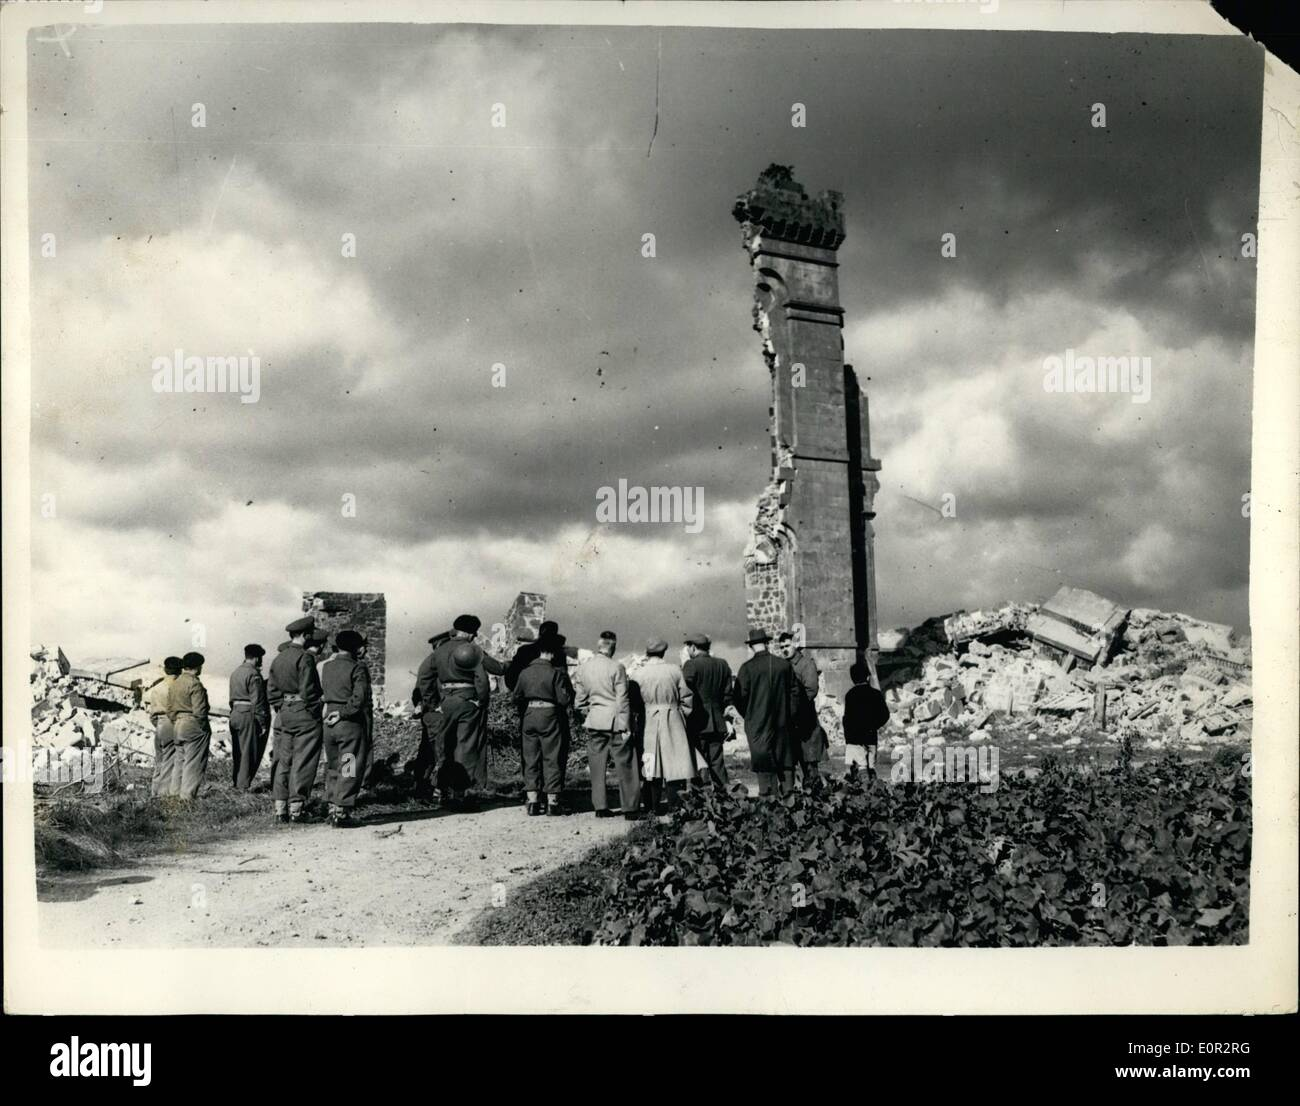 Oct. 10, 1957 - Ancient Castle Goes Up In Smoke. Blown Up By 500 LBS Of Explosives: The 150 year old Rossie Castle, near Montress was recently demolished by 80 officers and men of the 117 Field Engineering Regiment - with the aid of 500 lb. of plastic explosive. Within 30 seconds the castle - which was sold to a professional footballer 20 years ago for 1 - was reduced to 20,000 tons of rubble which will be used by the local council for road widening. For weeks the Army engineers had been boring holes in the 3ft. 6 in - Stock Image